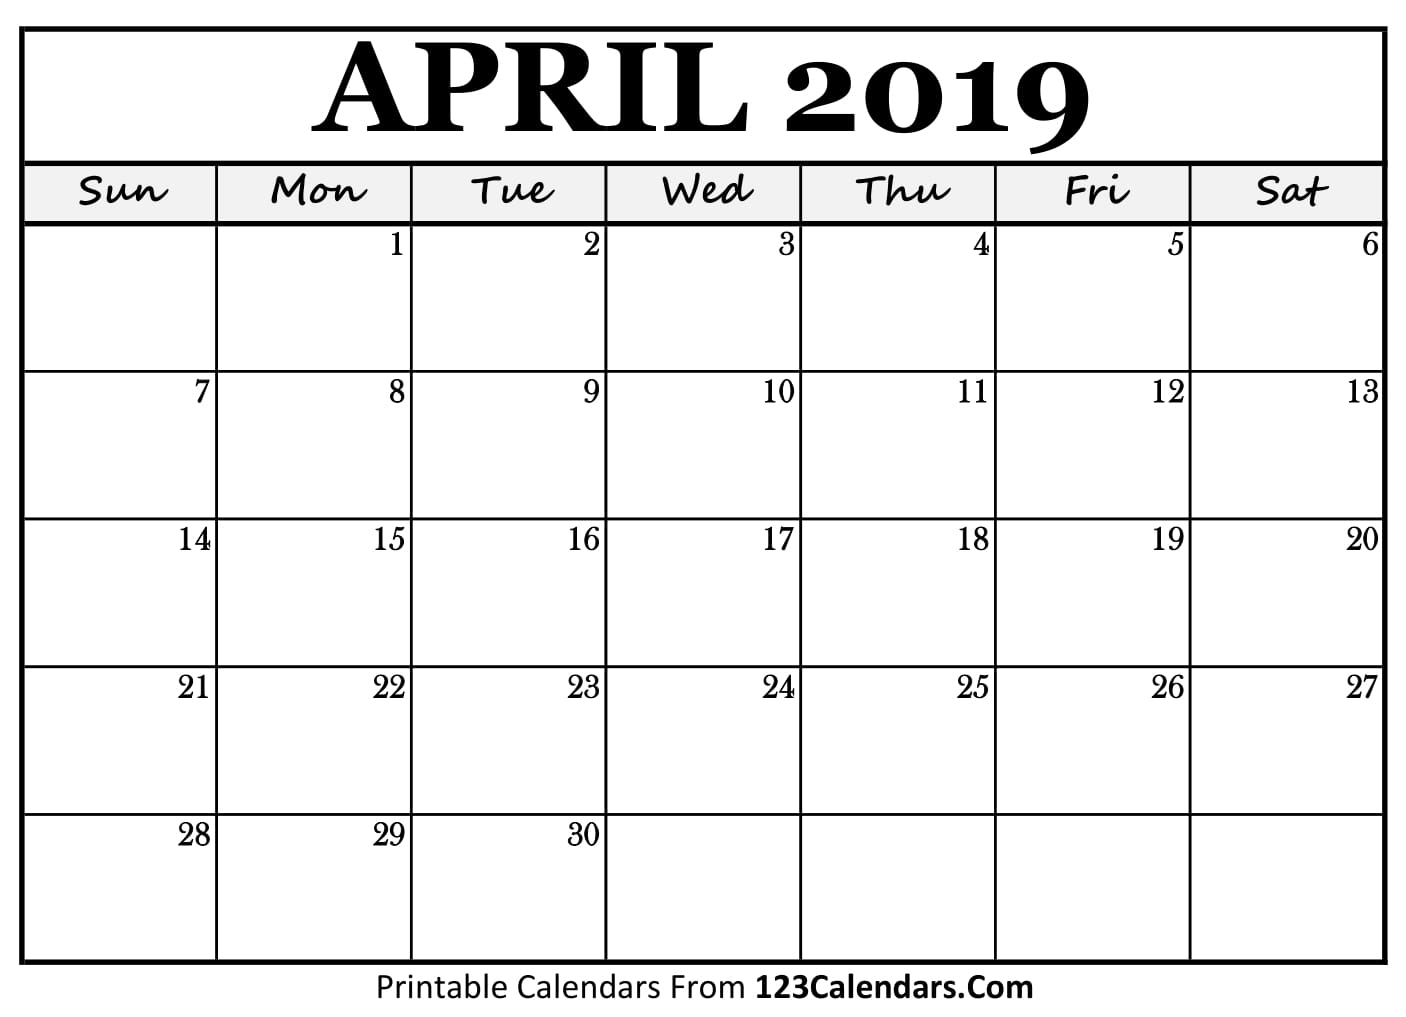 April 2019 Calendar Blank Easily Printable 123calendars